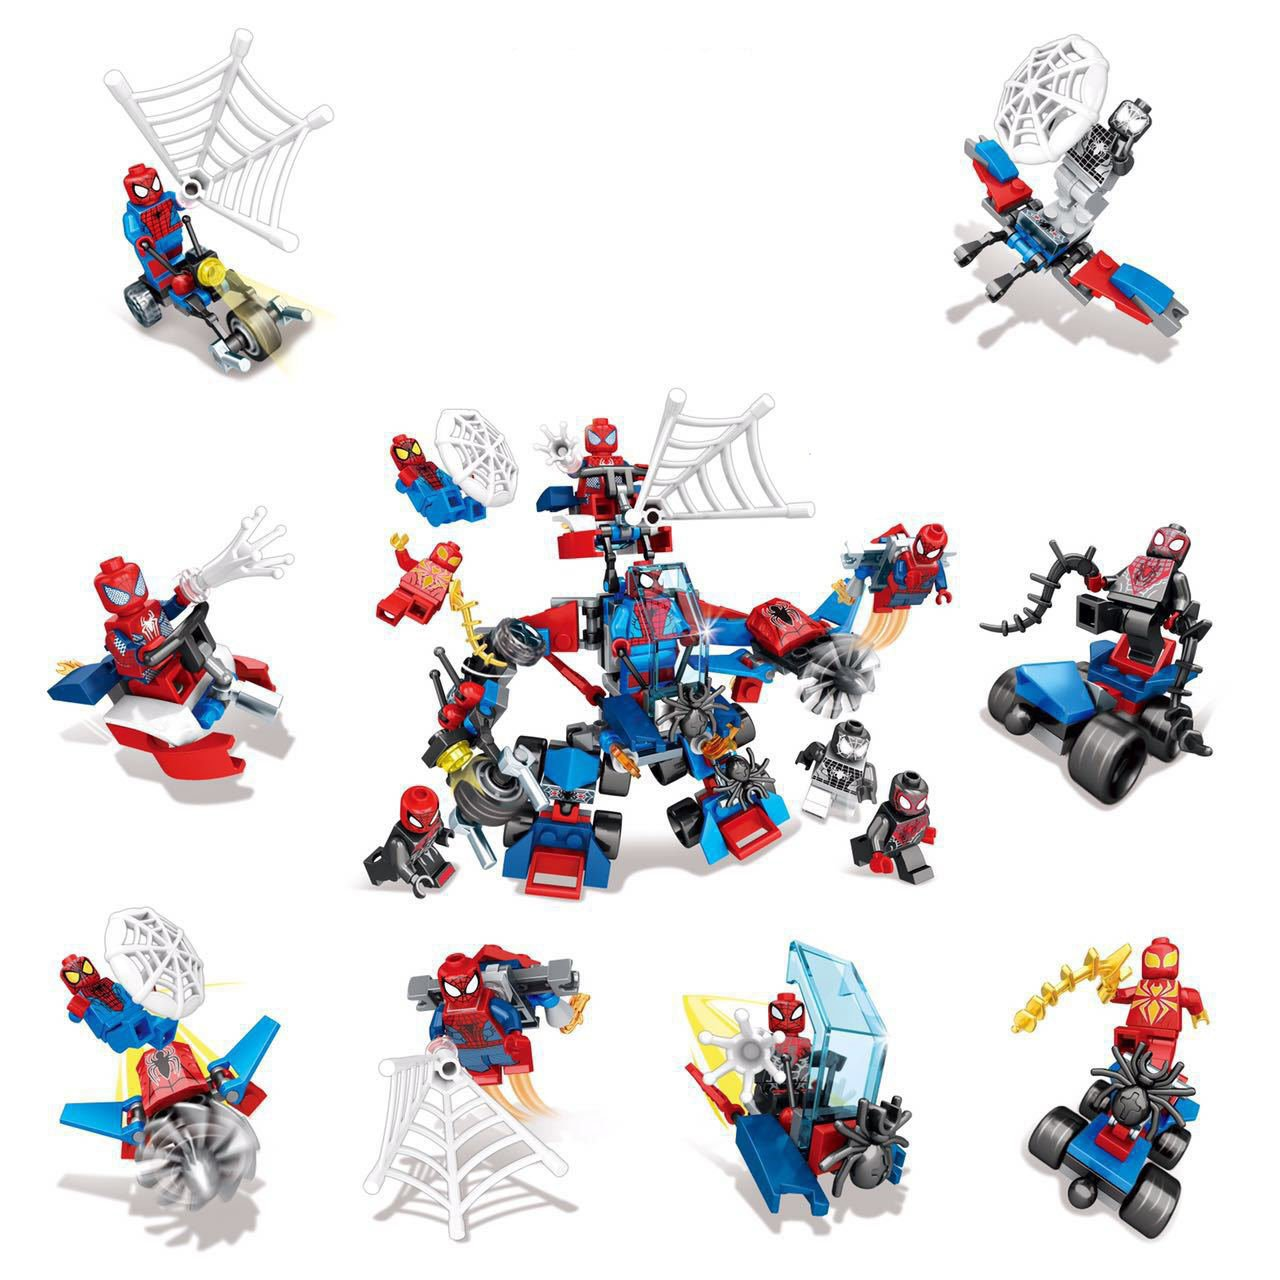 Marvel SpiderMan Homecoming Minifigures Motorcycles Lego Compatible Toys